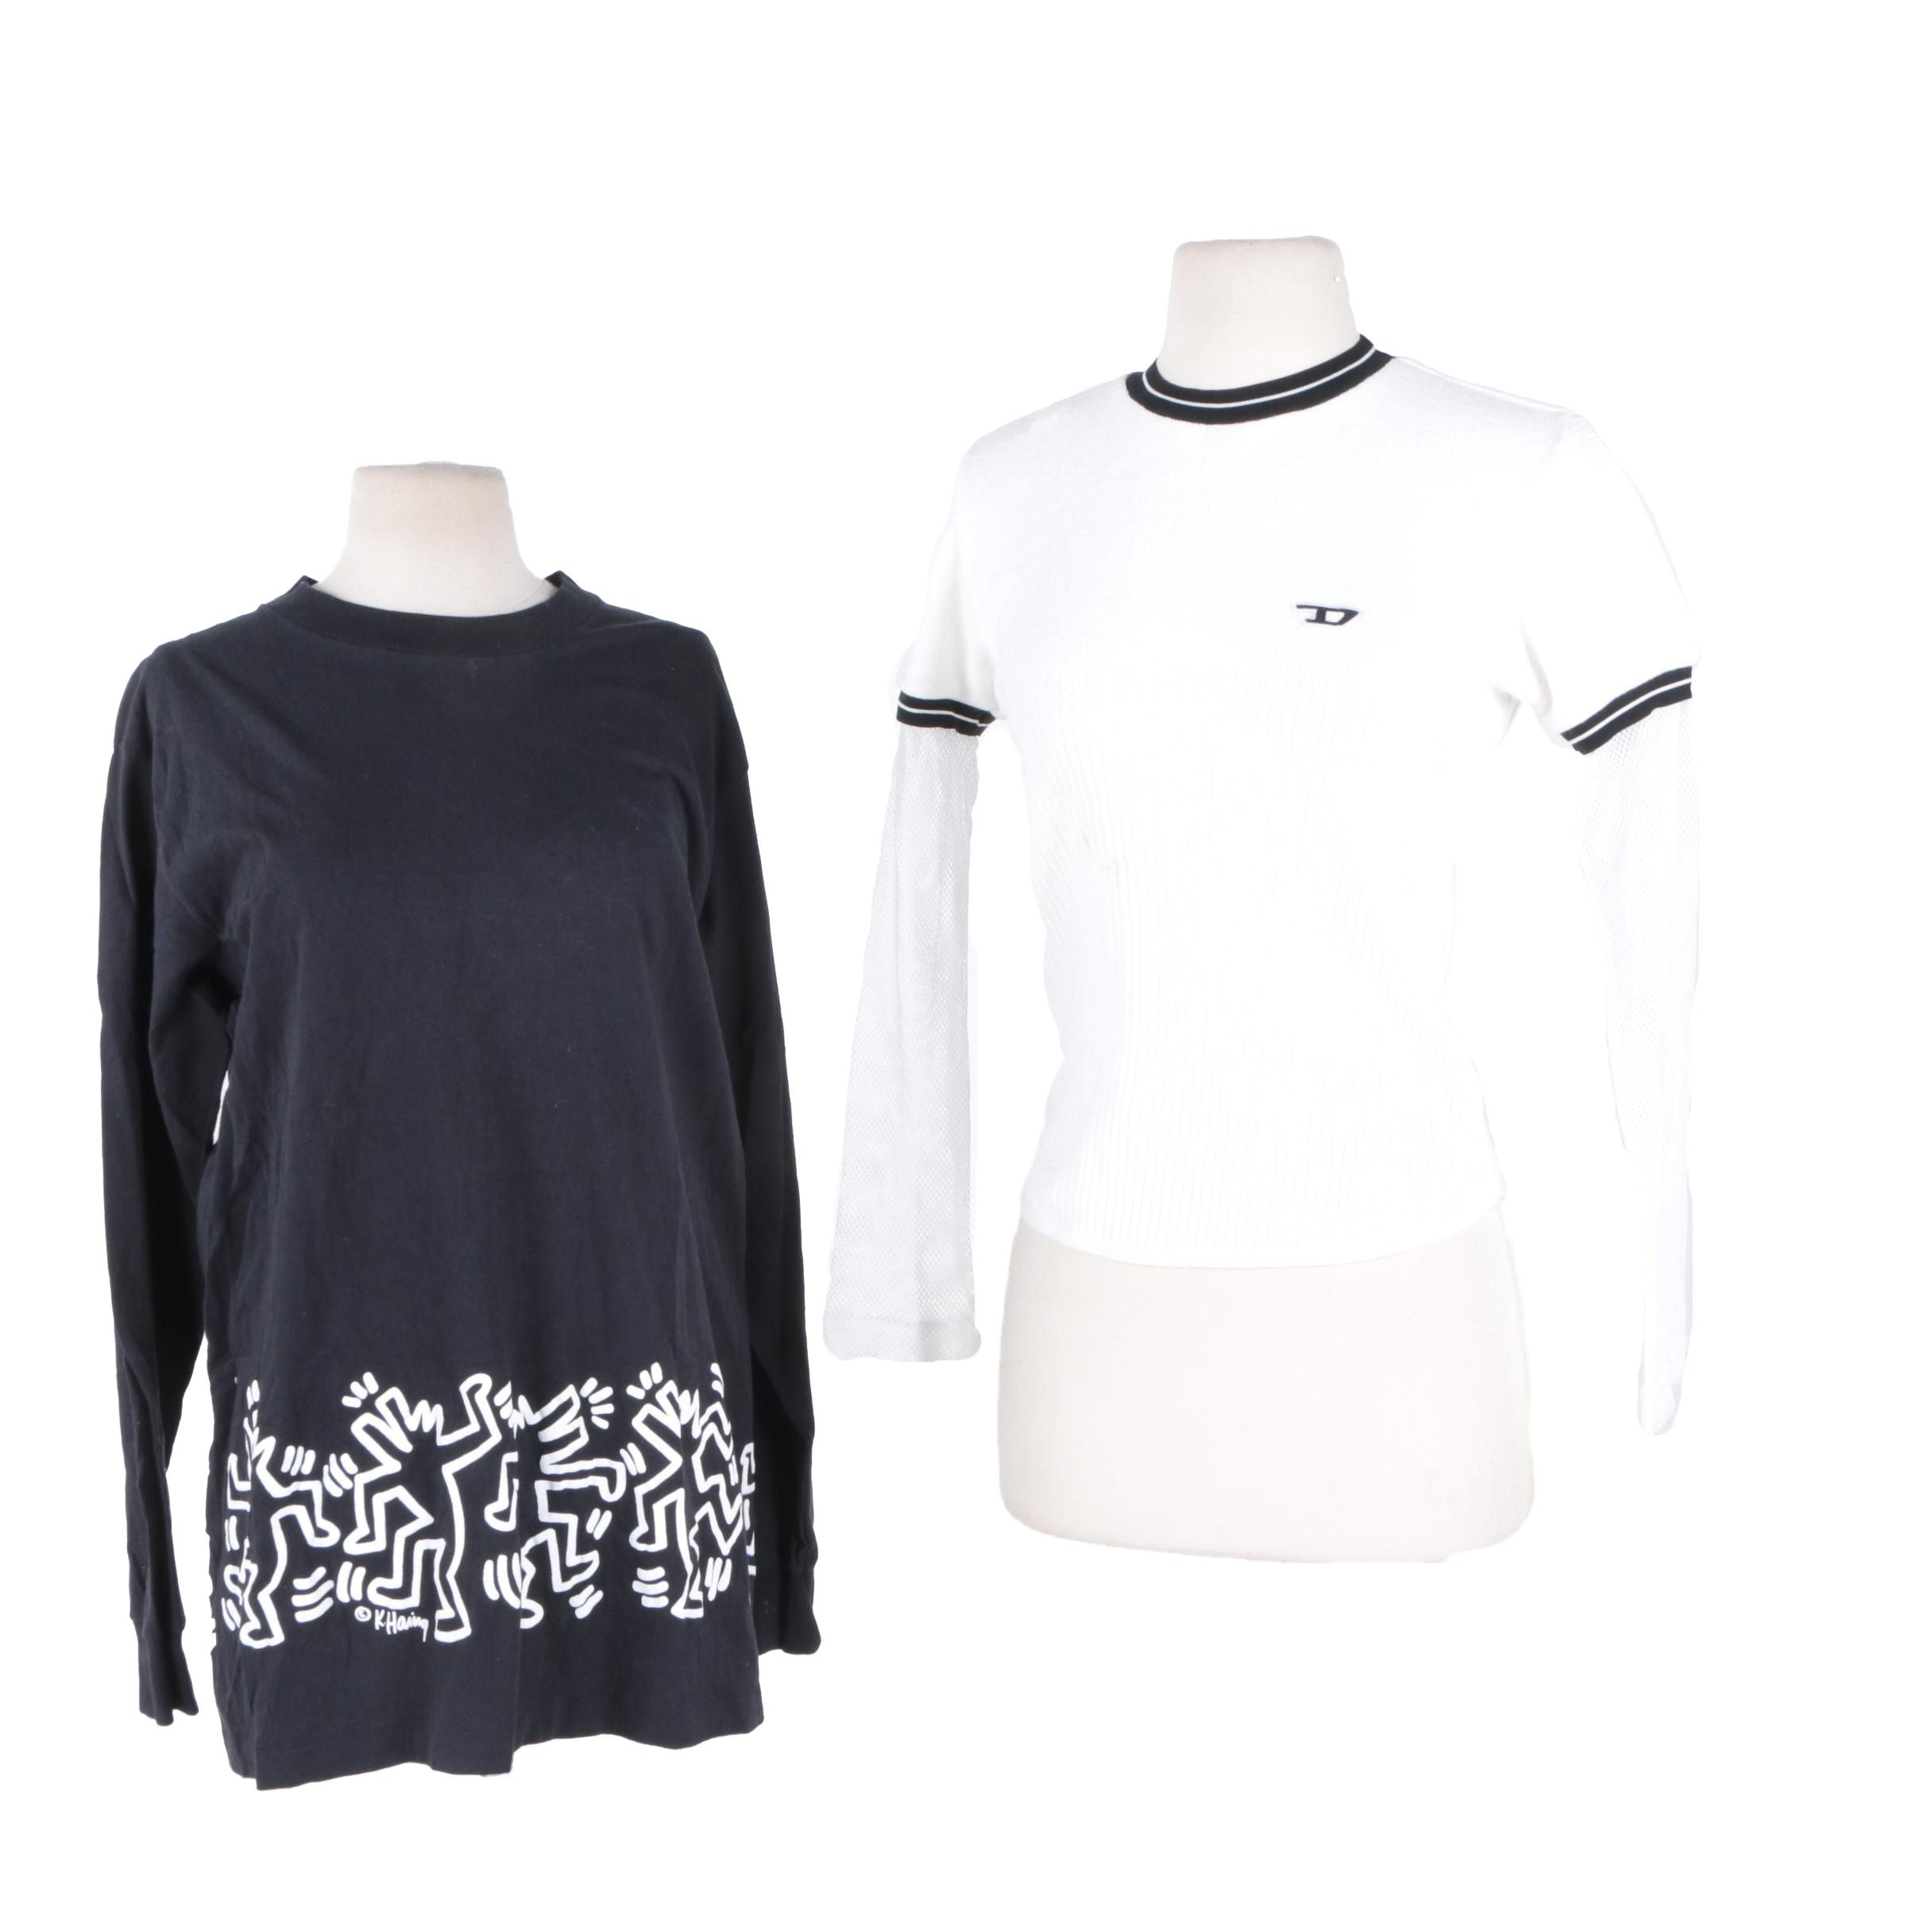 Women's Tops Including a Keith Haring T-Shirt